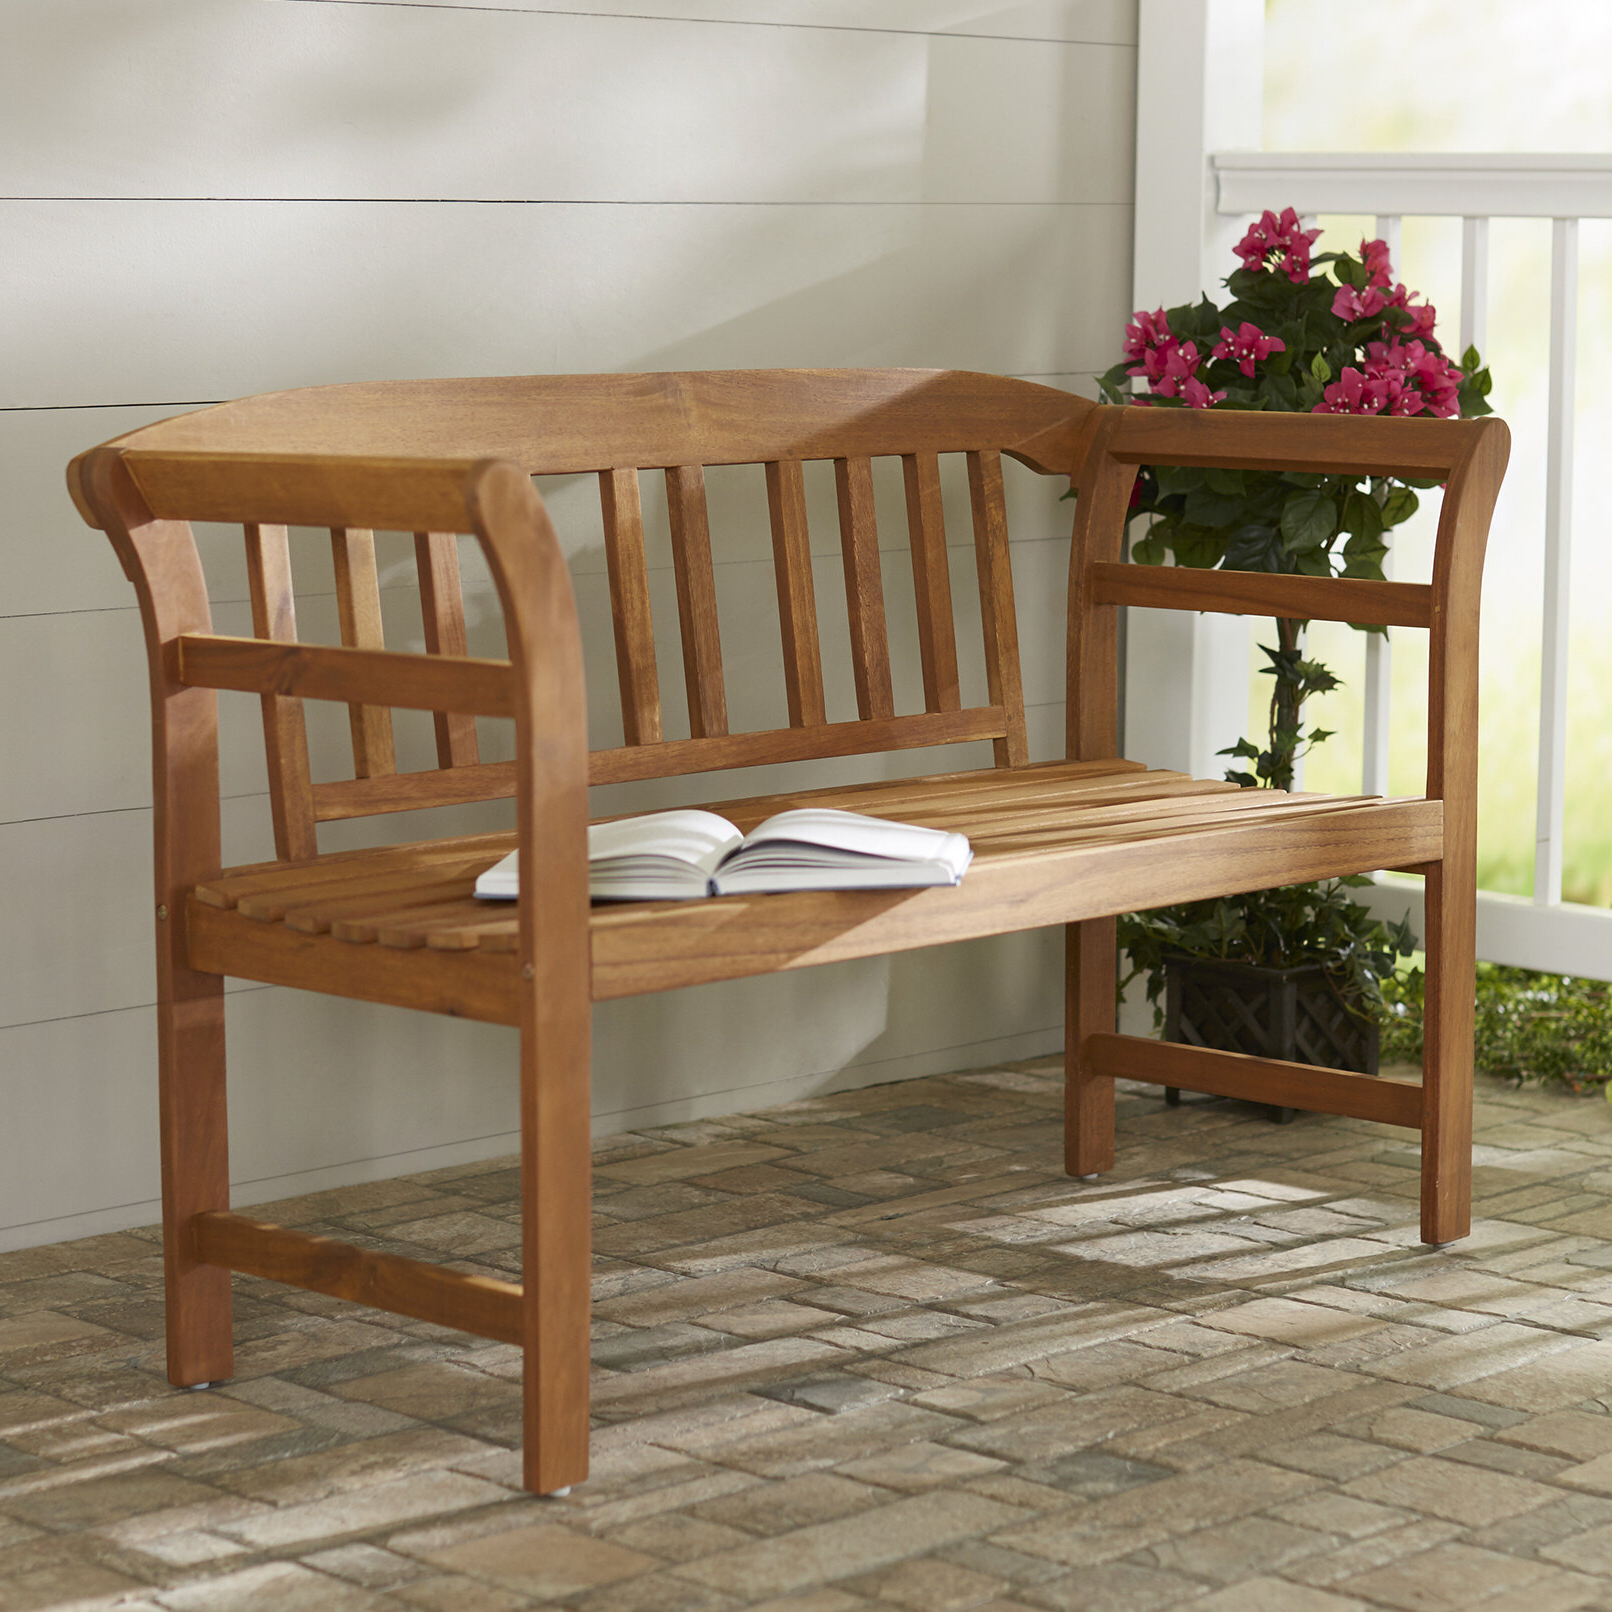 Archdale 2 Seat Acacia Wooden Garden Bench With Well Known Gabbert Wooden Garden Benches (View 19 of 30)